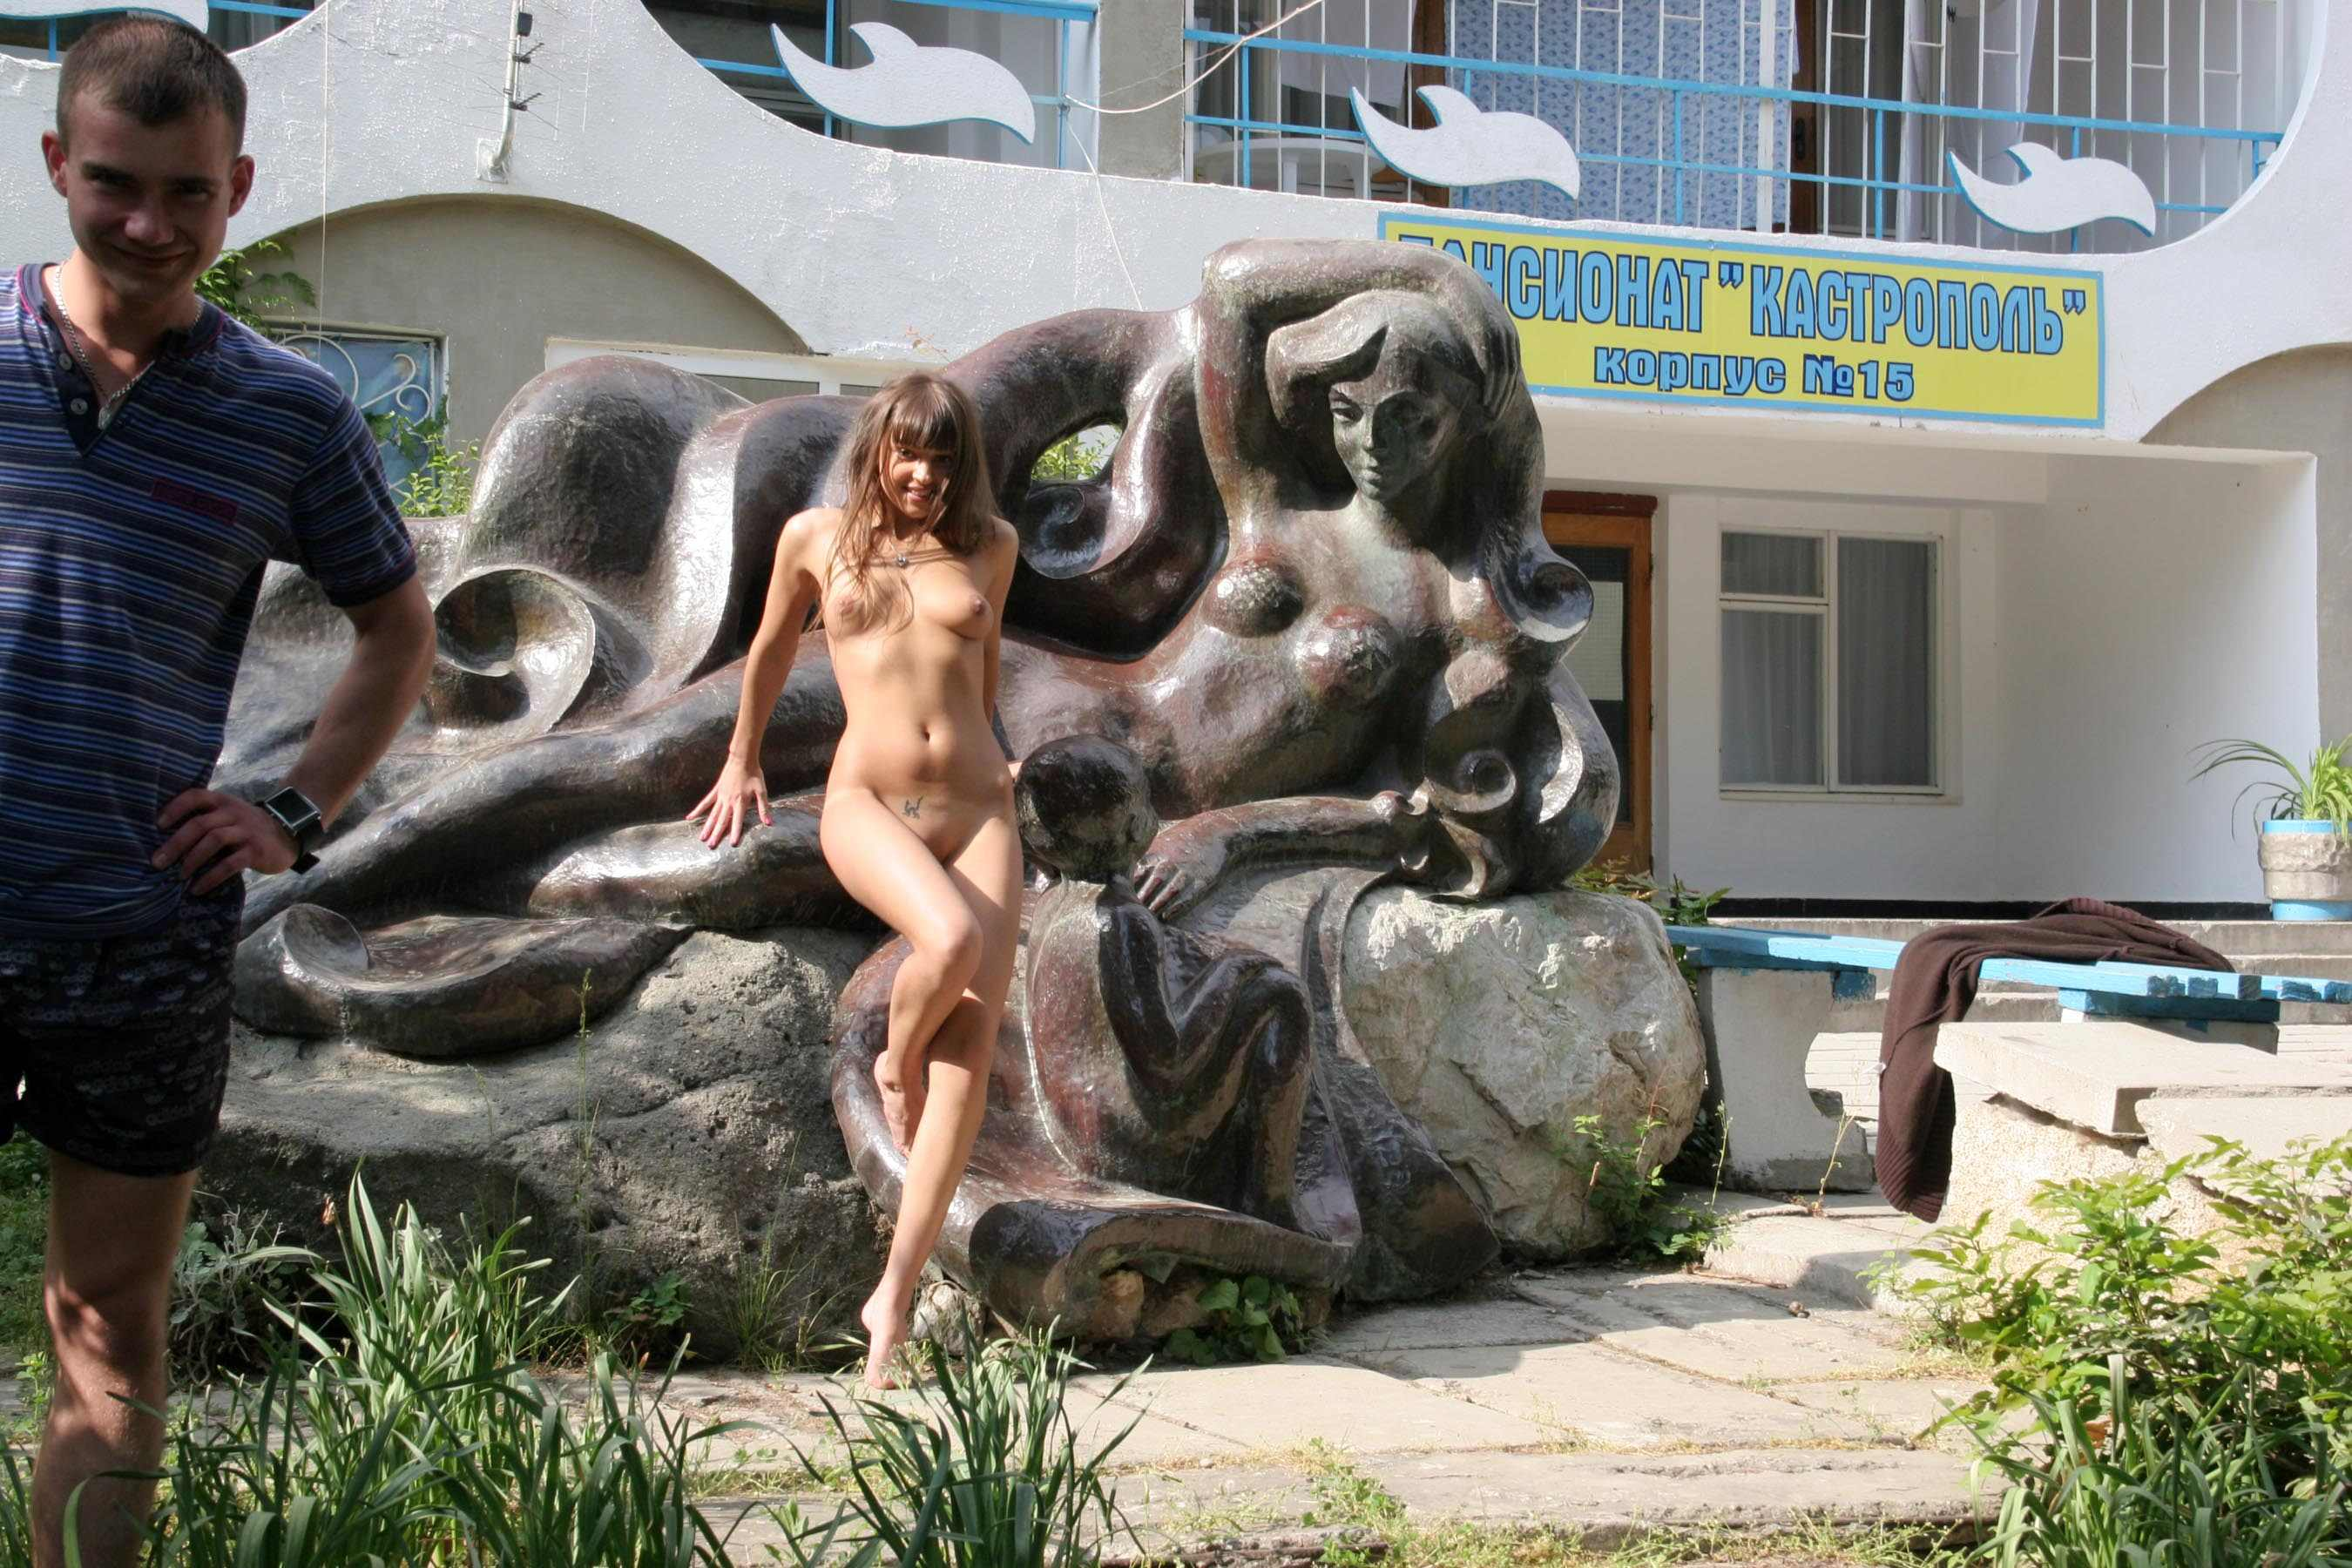 melena-crimean-holiday-public-nude-in-russia-24